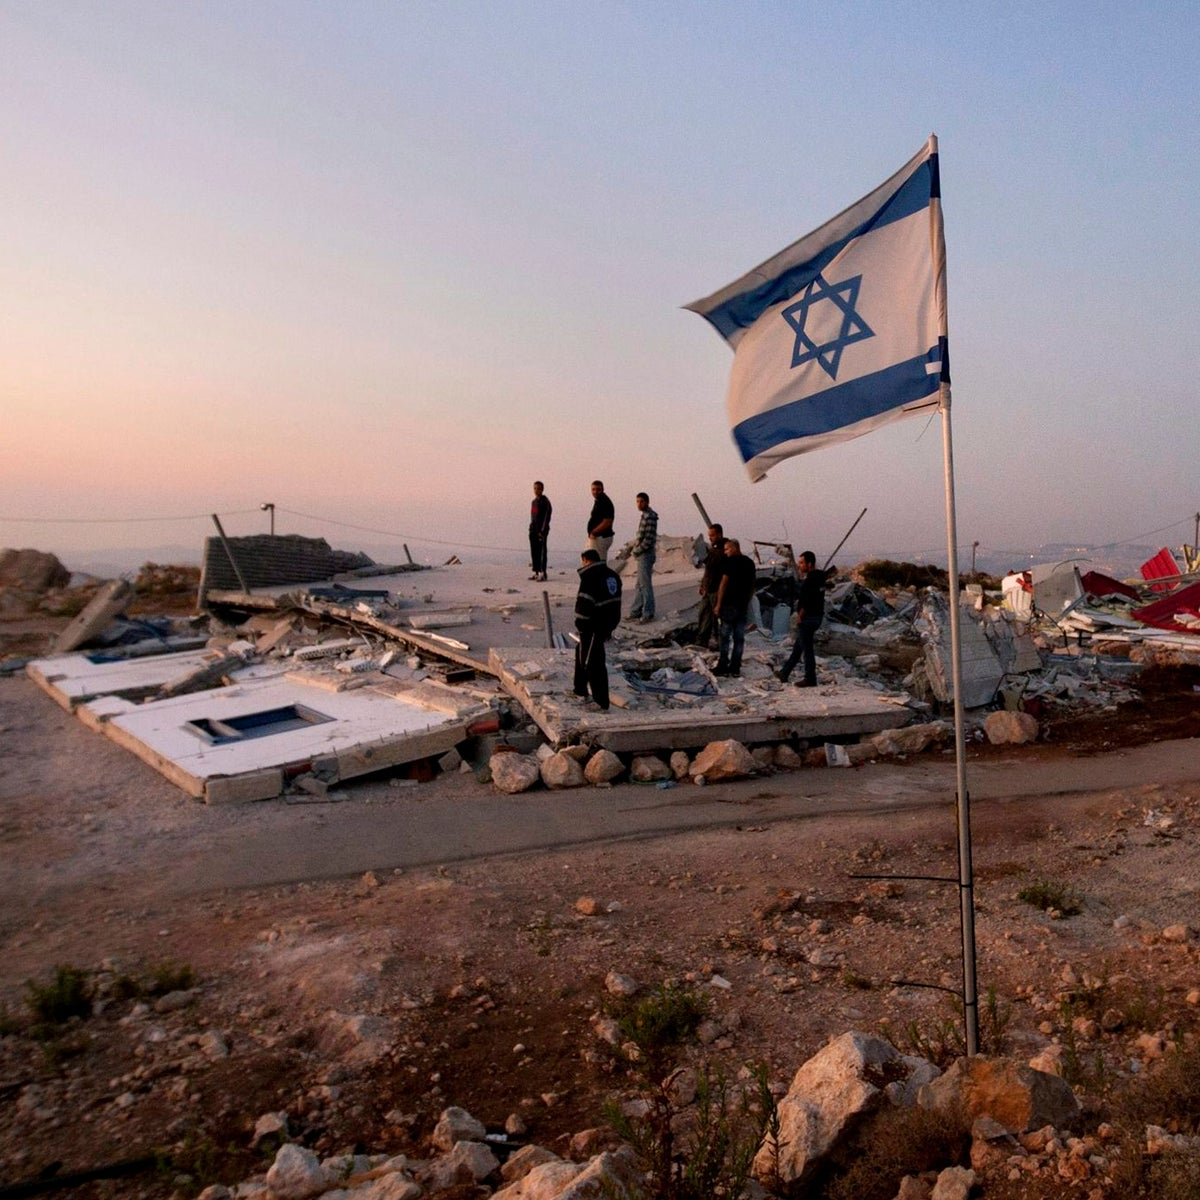 In this Sept. 5, 2011 file photo, Jewish settlers stand on the rubble of a house demolished by the Israeli authorities in the West Bank settlement of Migron.